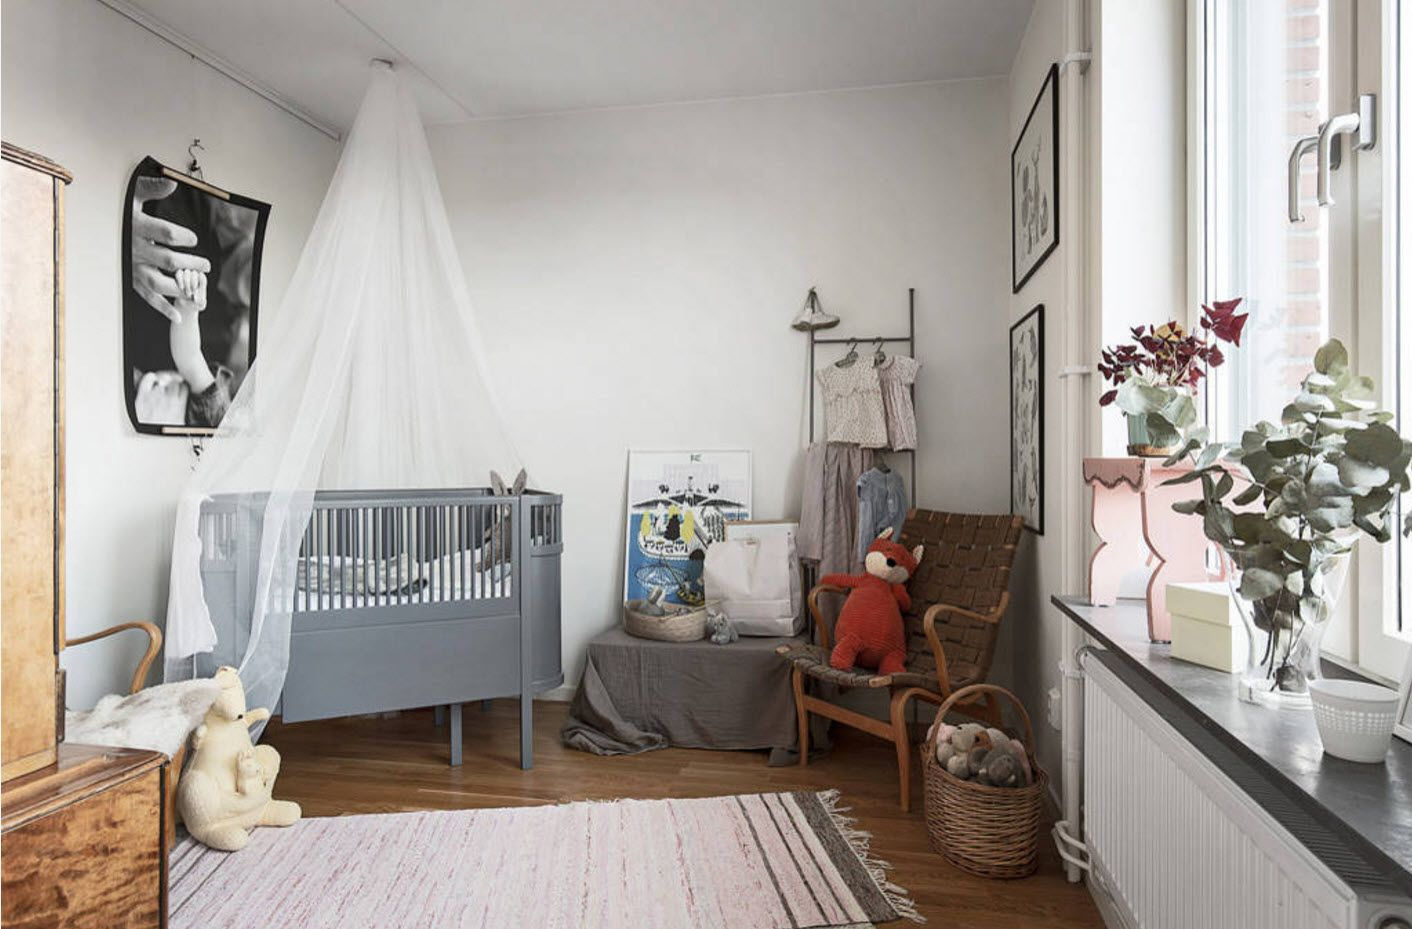 Classic and vintage mix of styles in the nursery